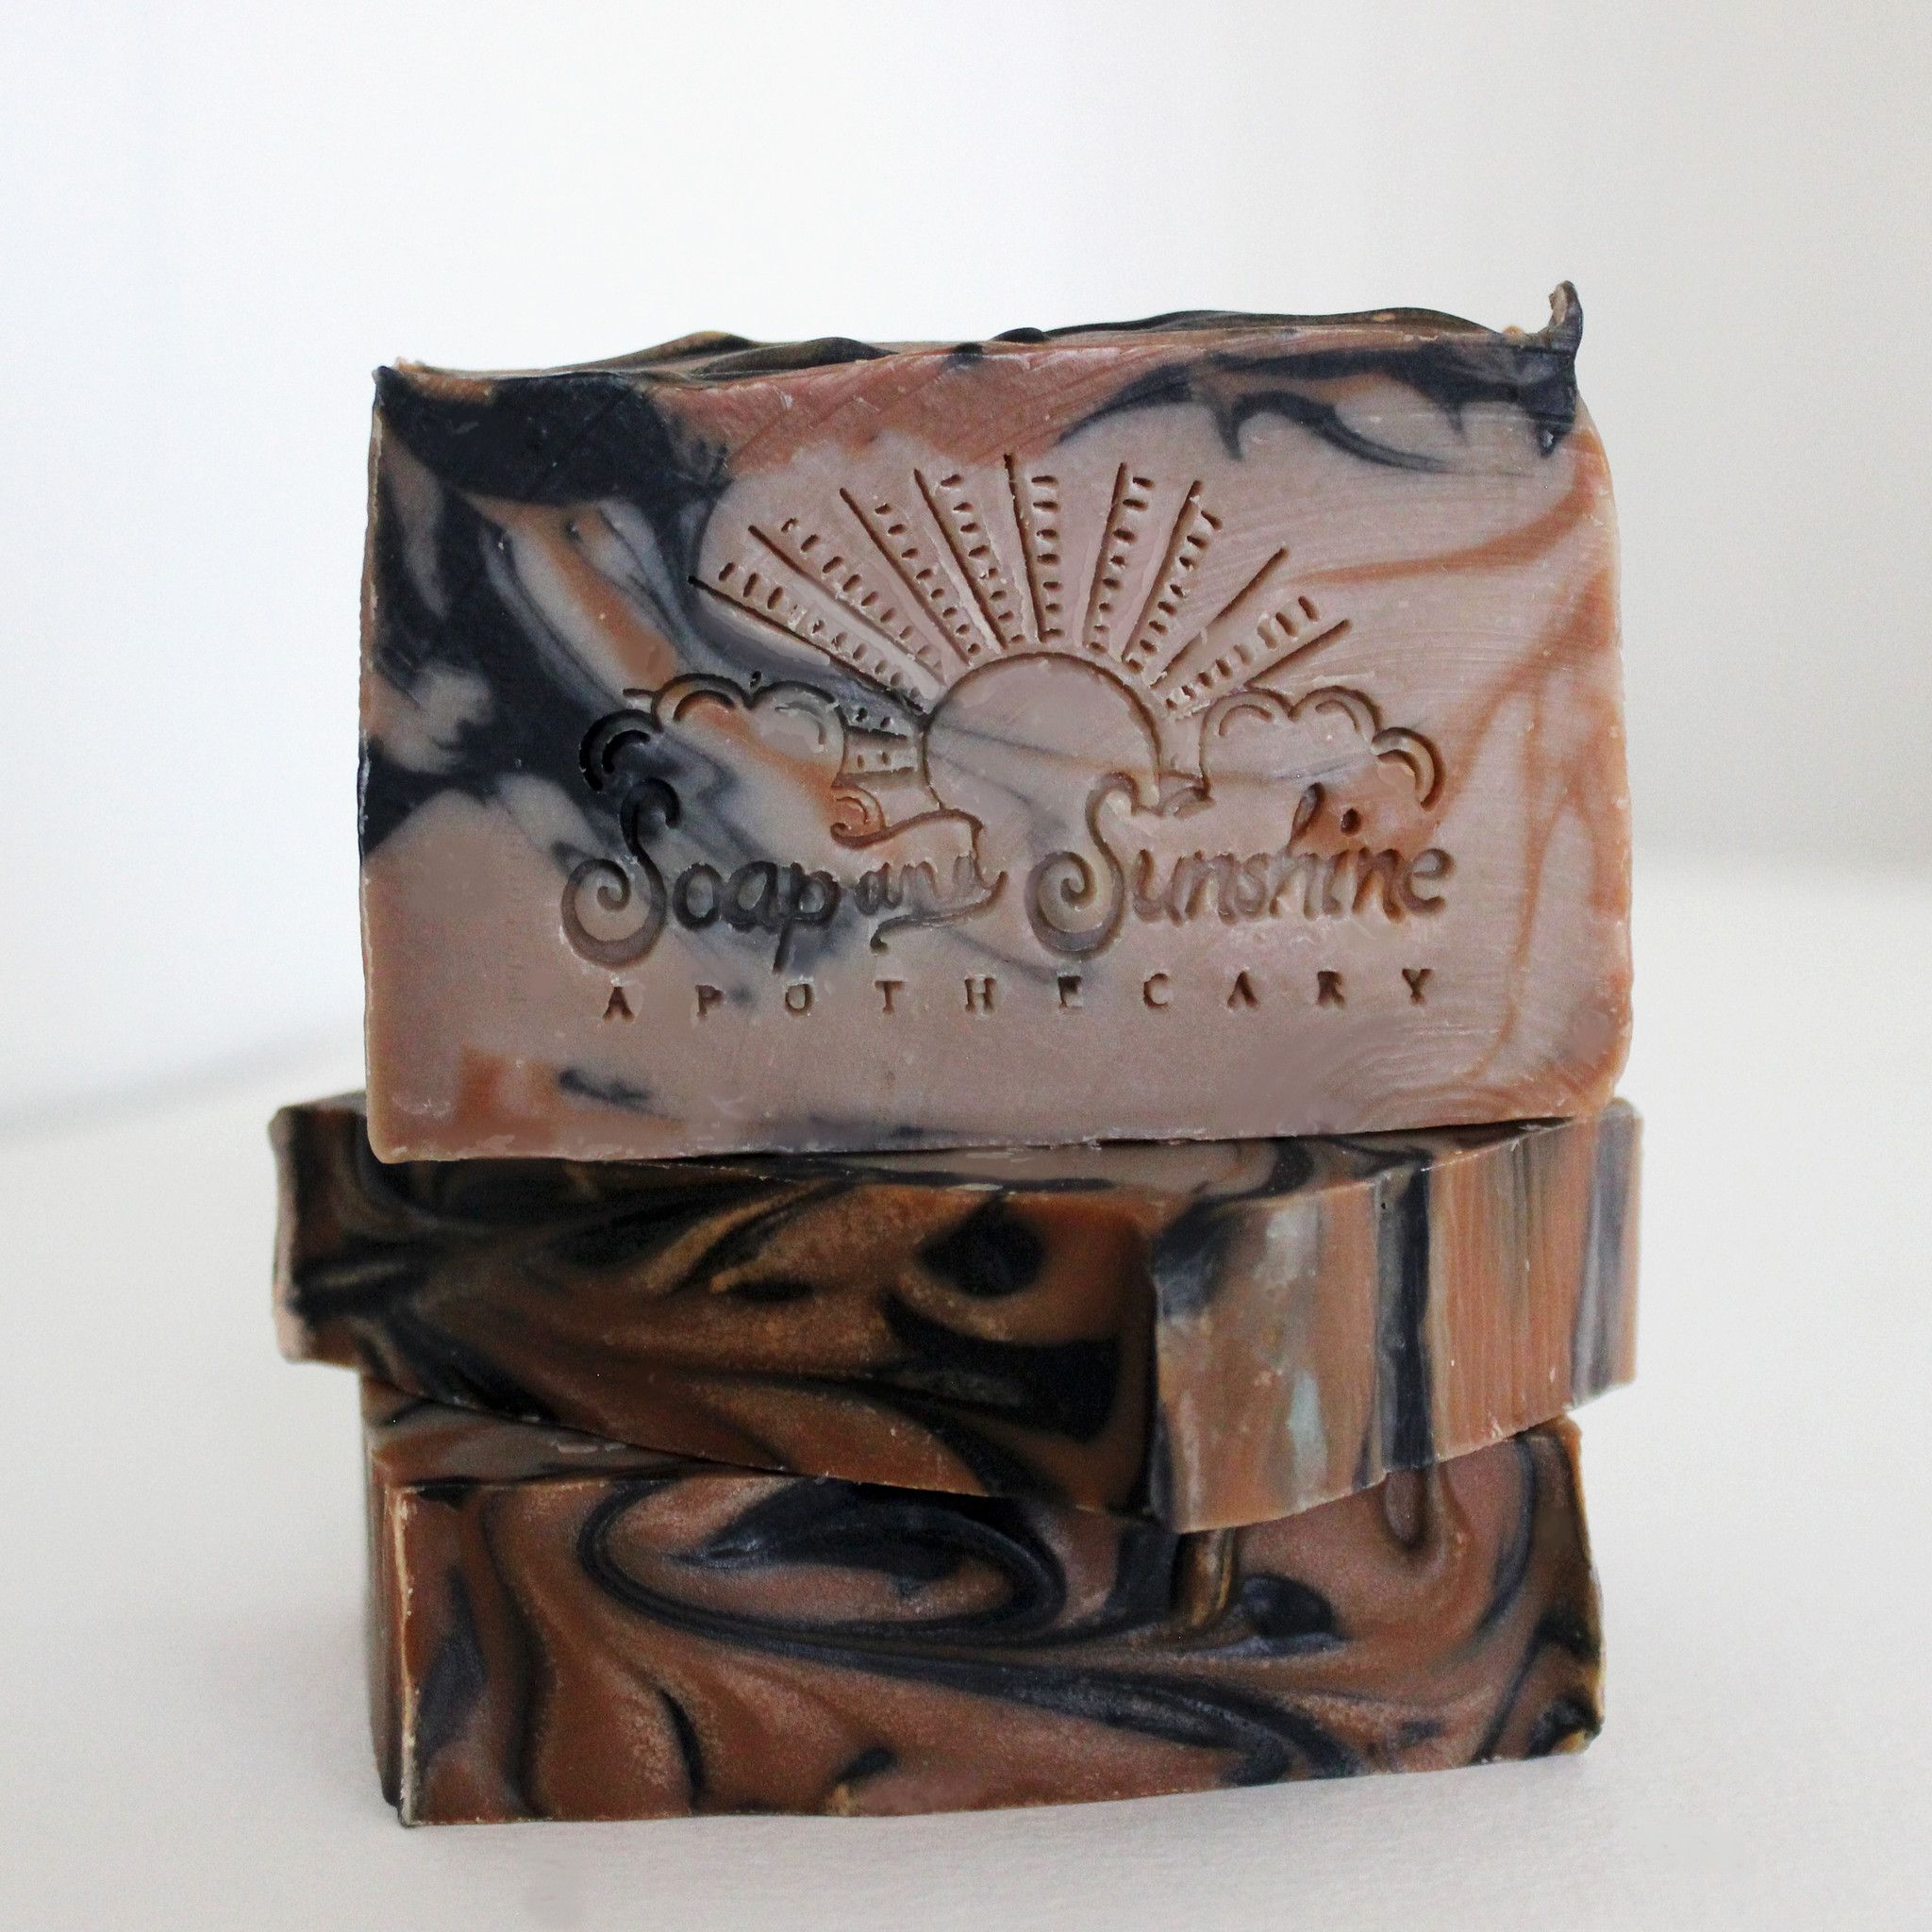 African Charcoal Shea Handcrafted Soap Bar- Free Holiday Shipping Offer! Paraben and pthalate free beauty products!